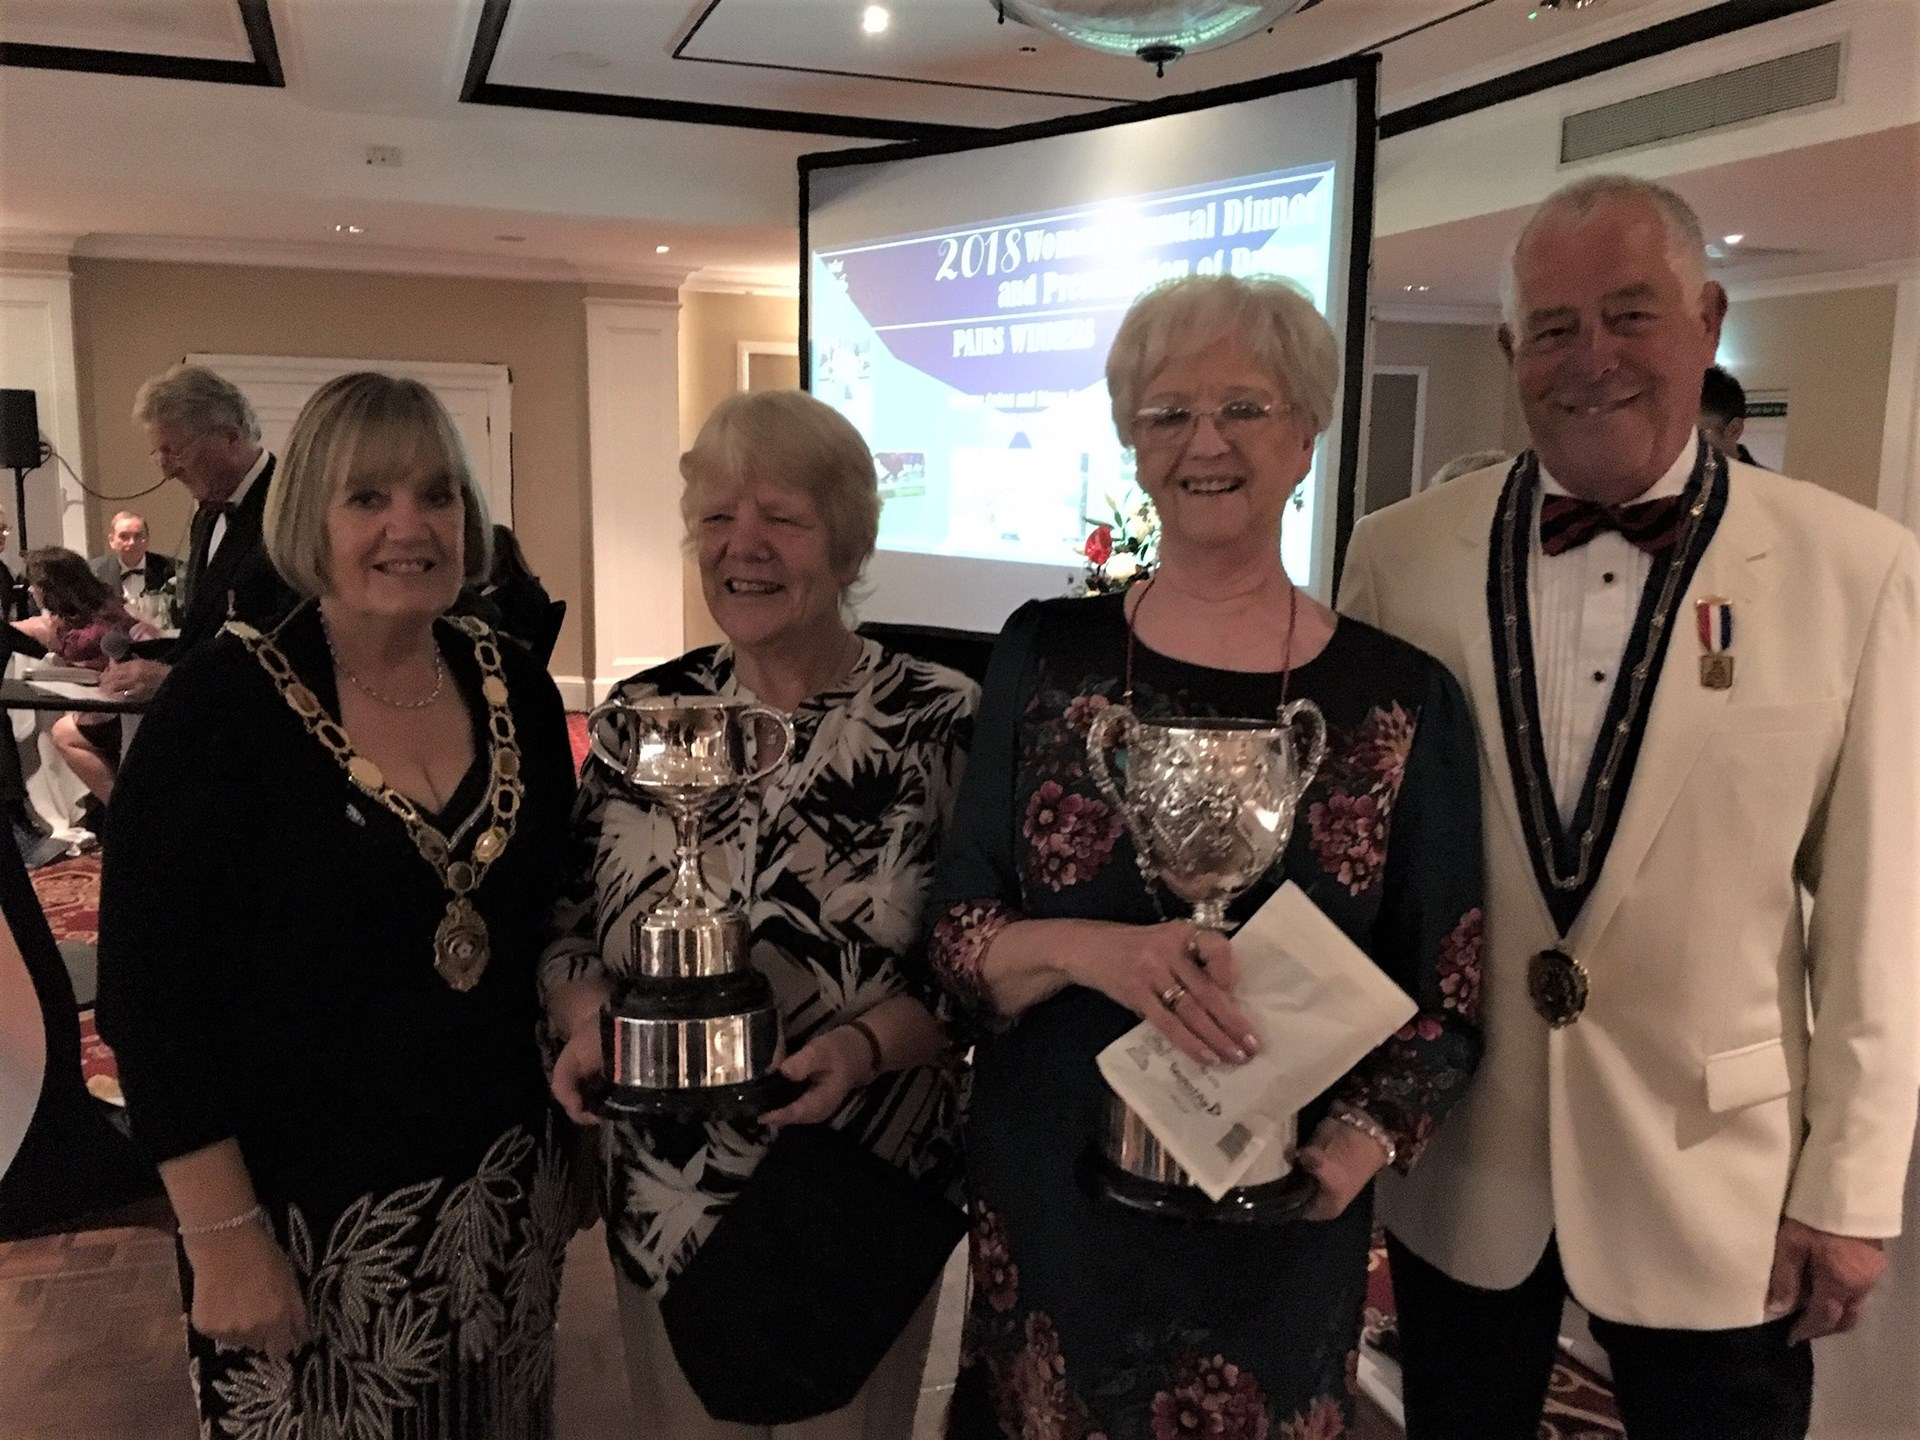 Tina Robinson Yorkshire Ladies President 2018, Sue Cotton & Di Jones National Ladies Pairs Champions, Bill Smith BE President 2018